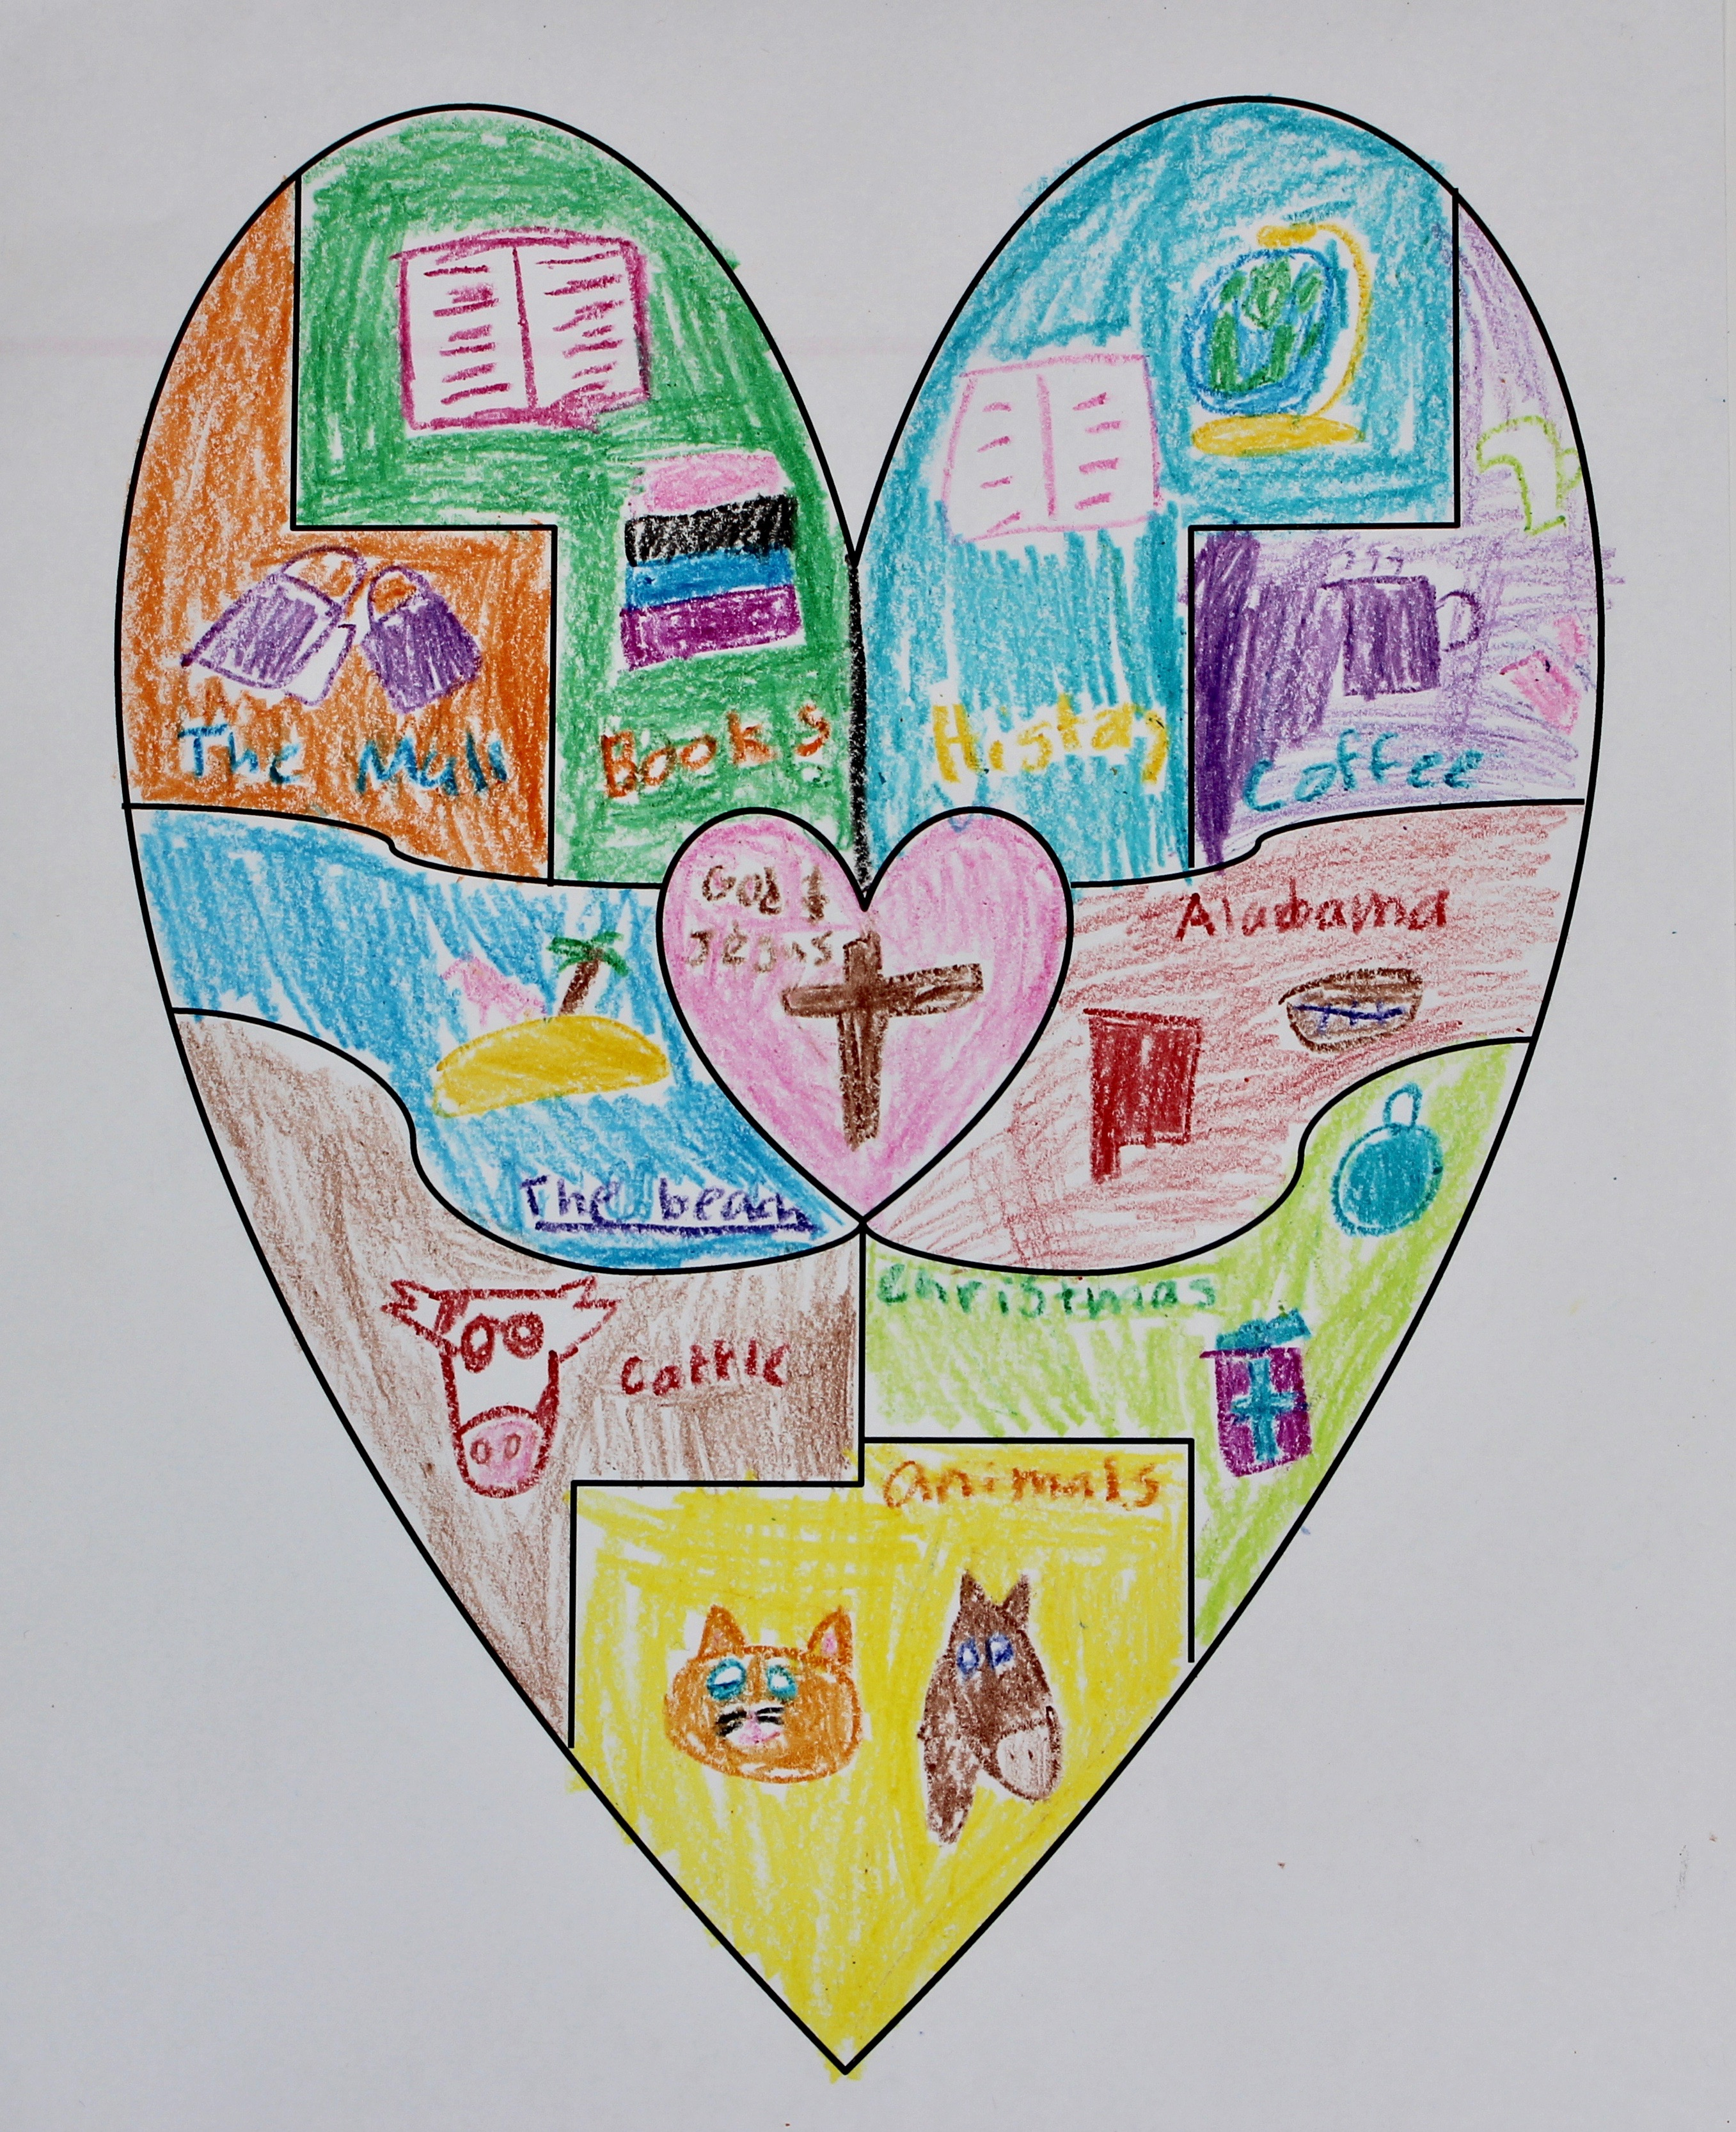 Narrative Writing  Ashleigh's Education Journey regarding A Few Of My Favorite Things Heart Map